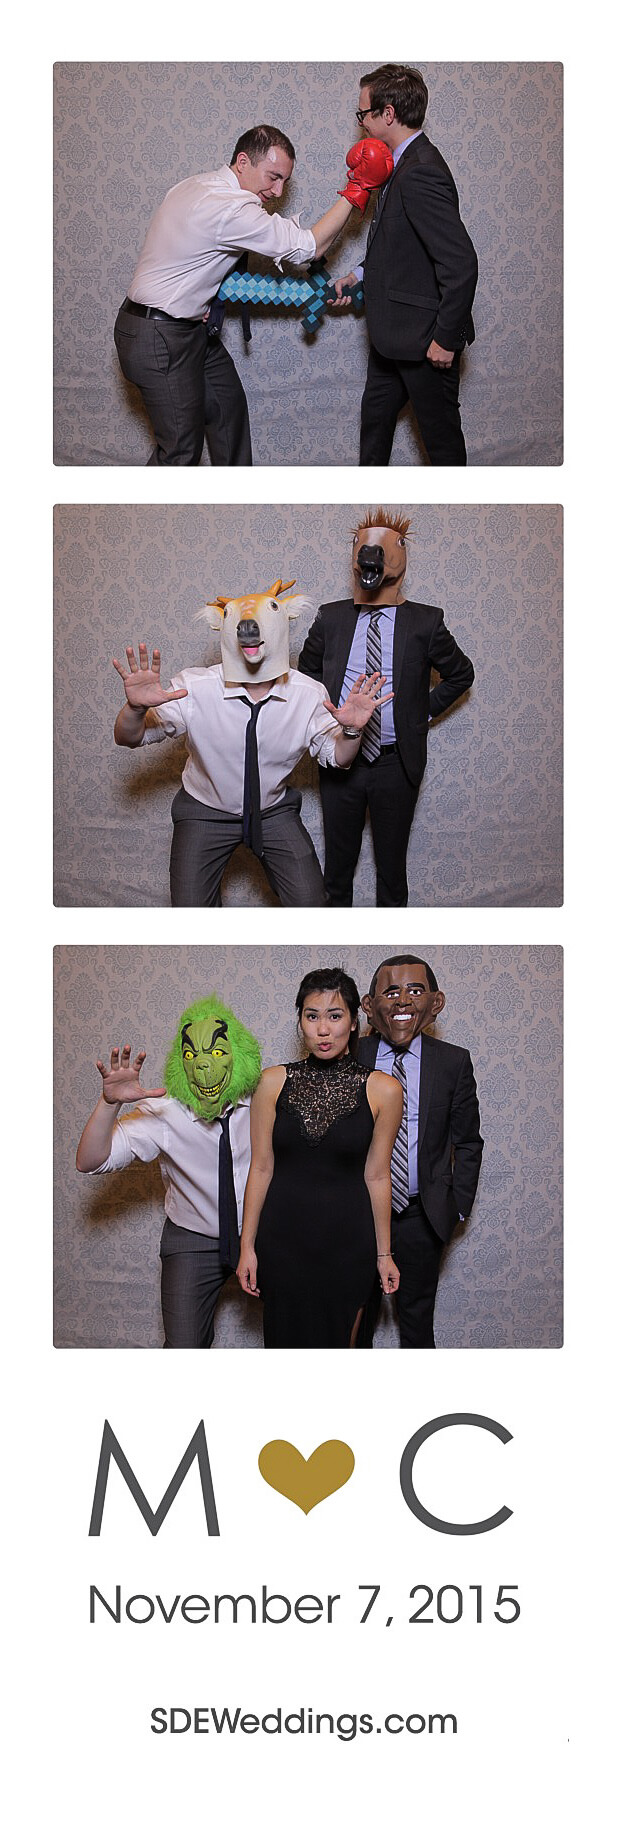 The Club at Bond Head Wedding Photo Booth Rental 2